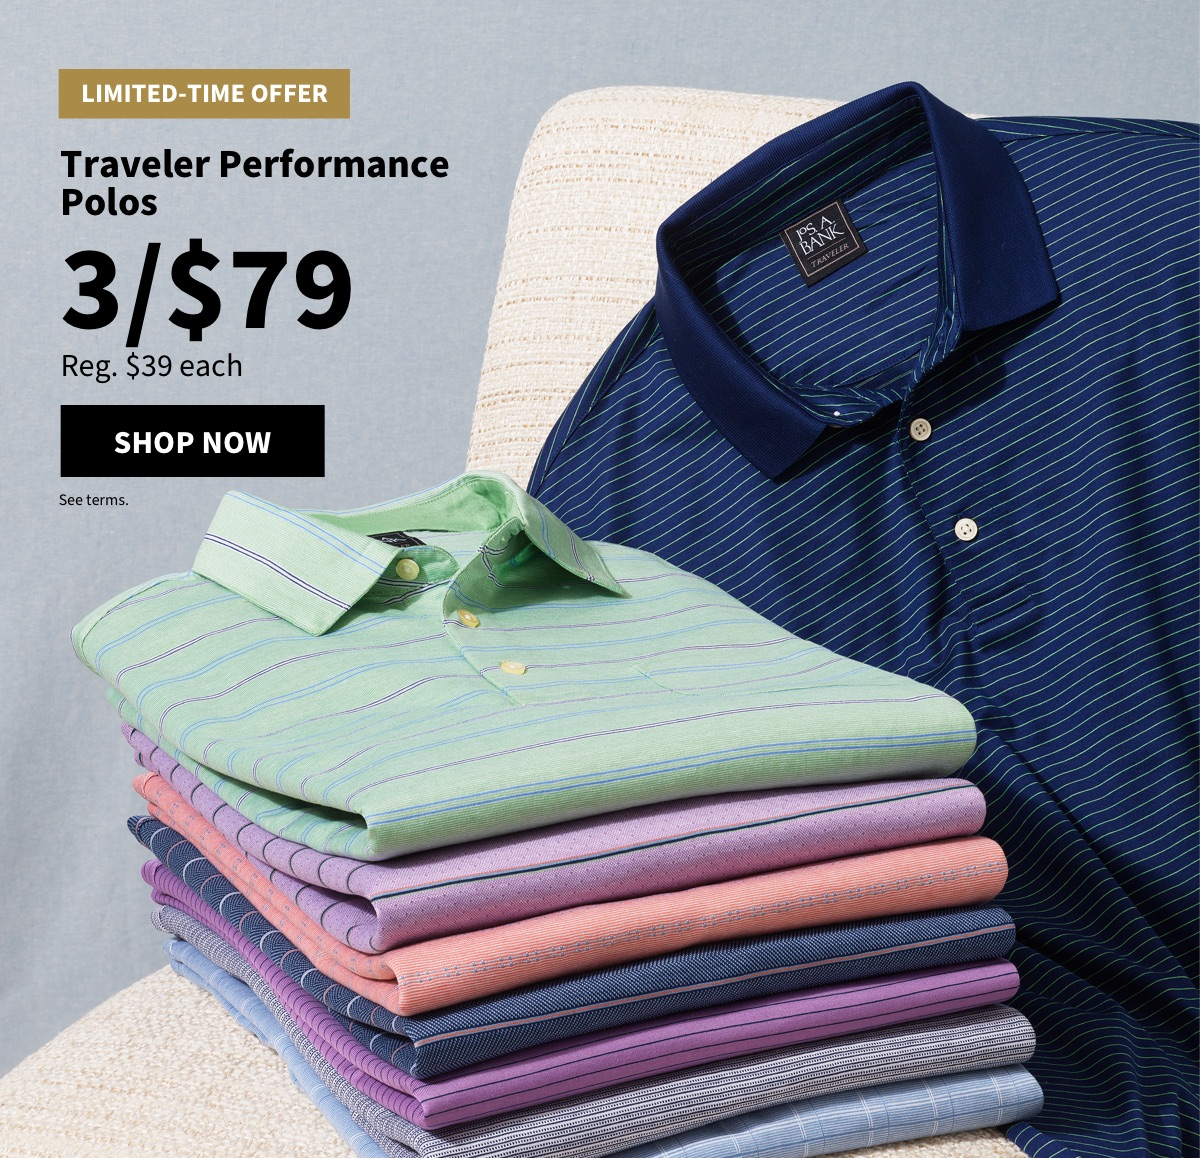 Traveler Performance Polos 3/$79 - Shop Now